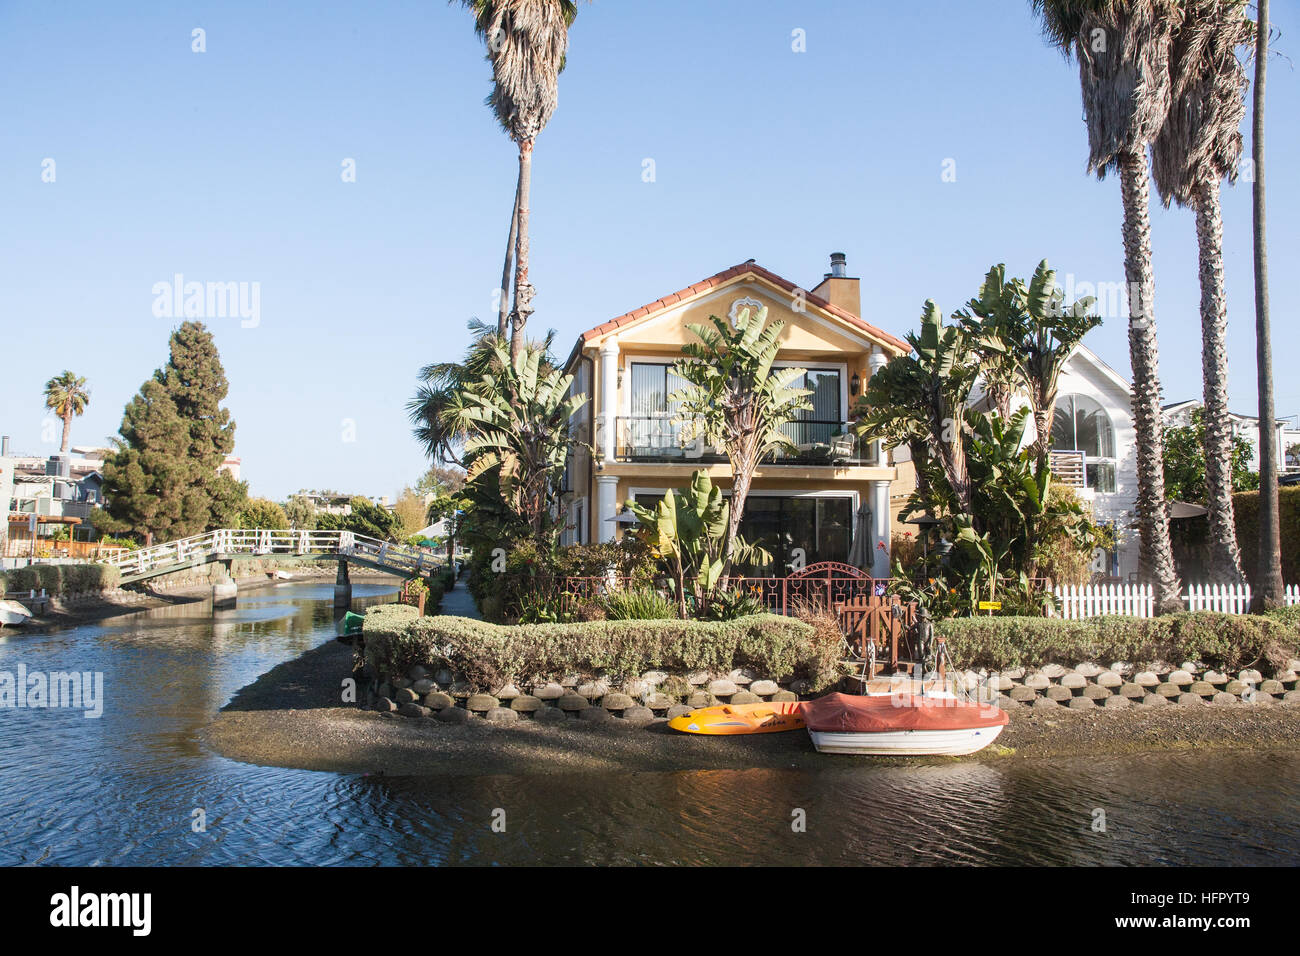 Los Angeles Venice Canals Abbot Kinney Neighborhoods Homes